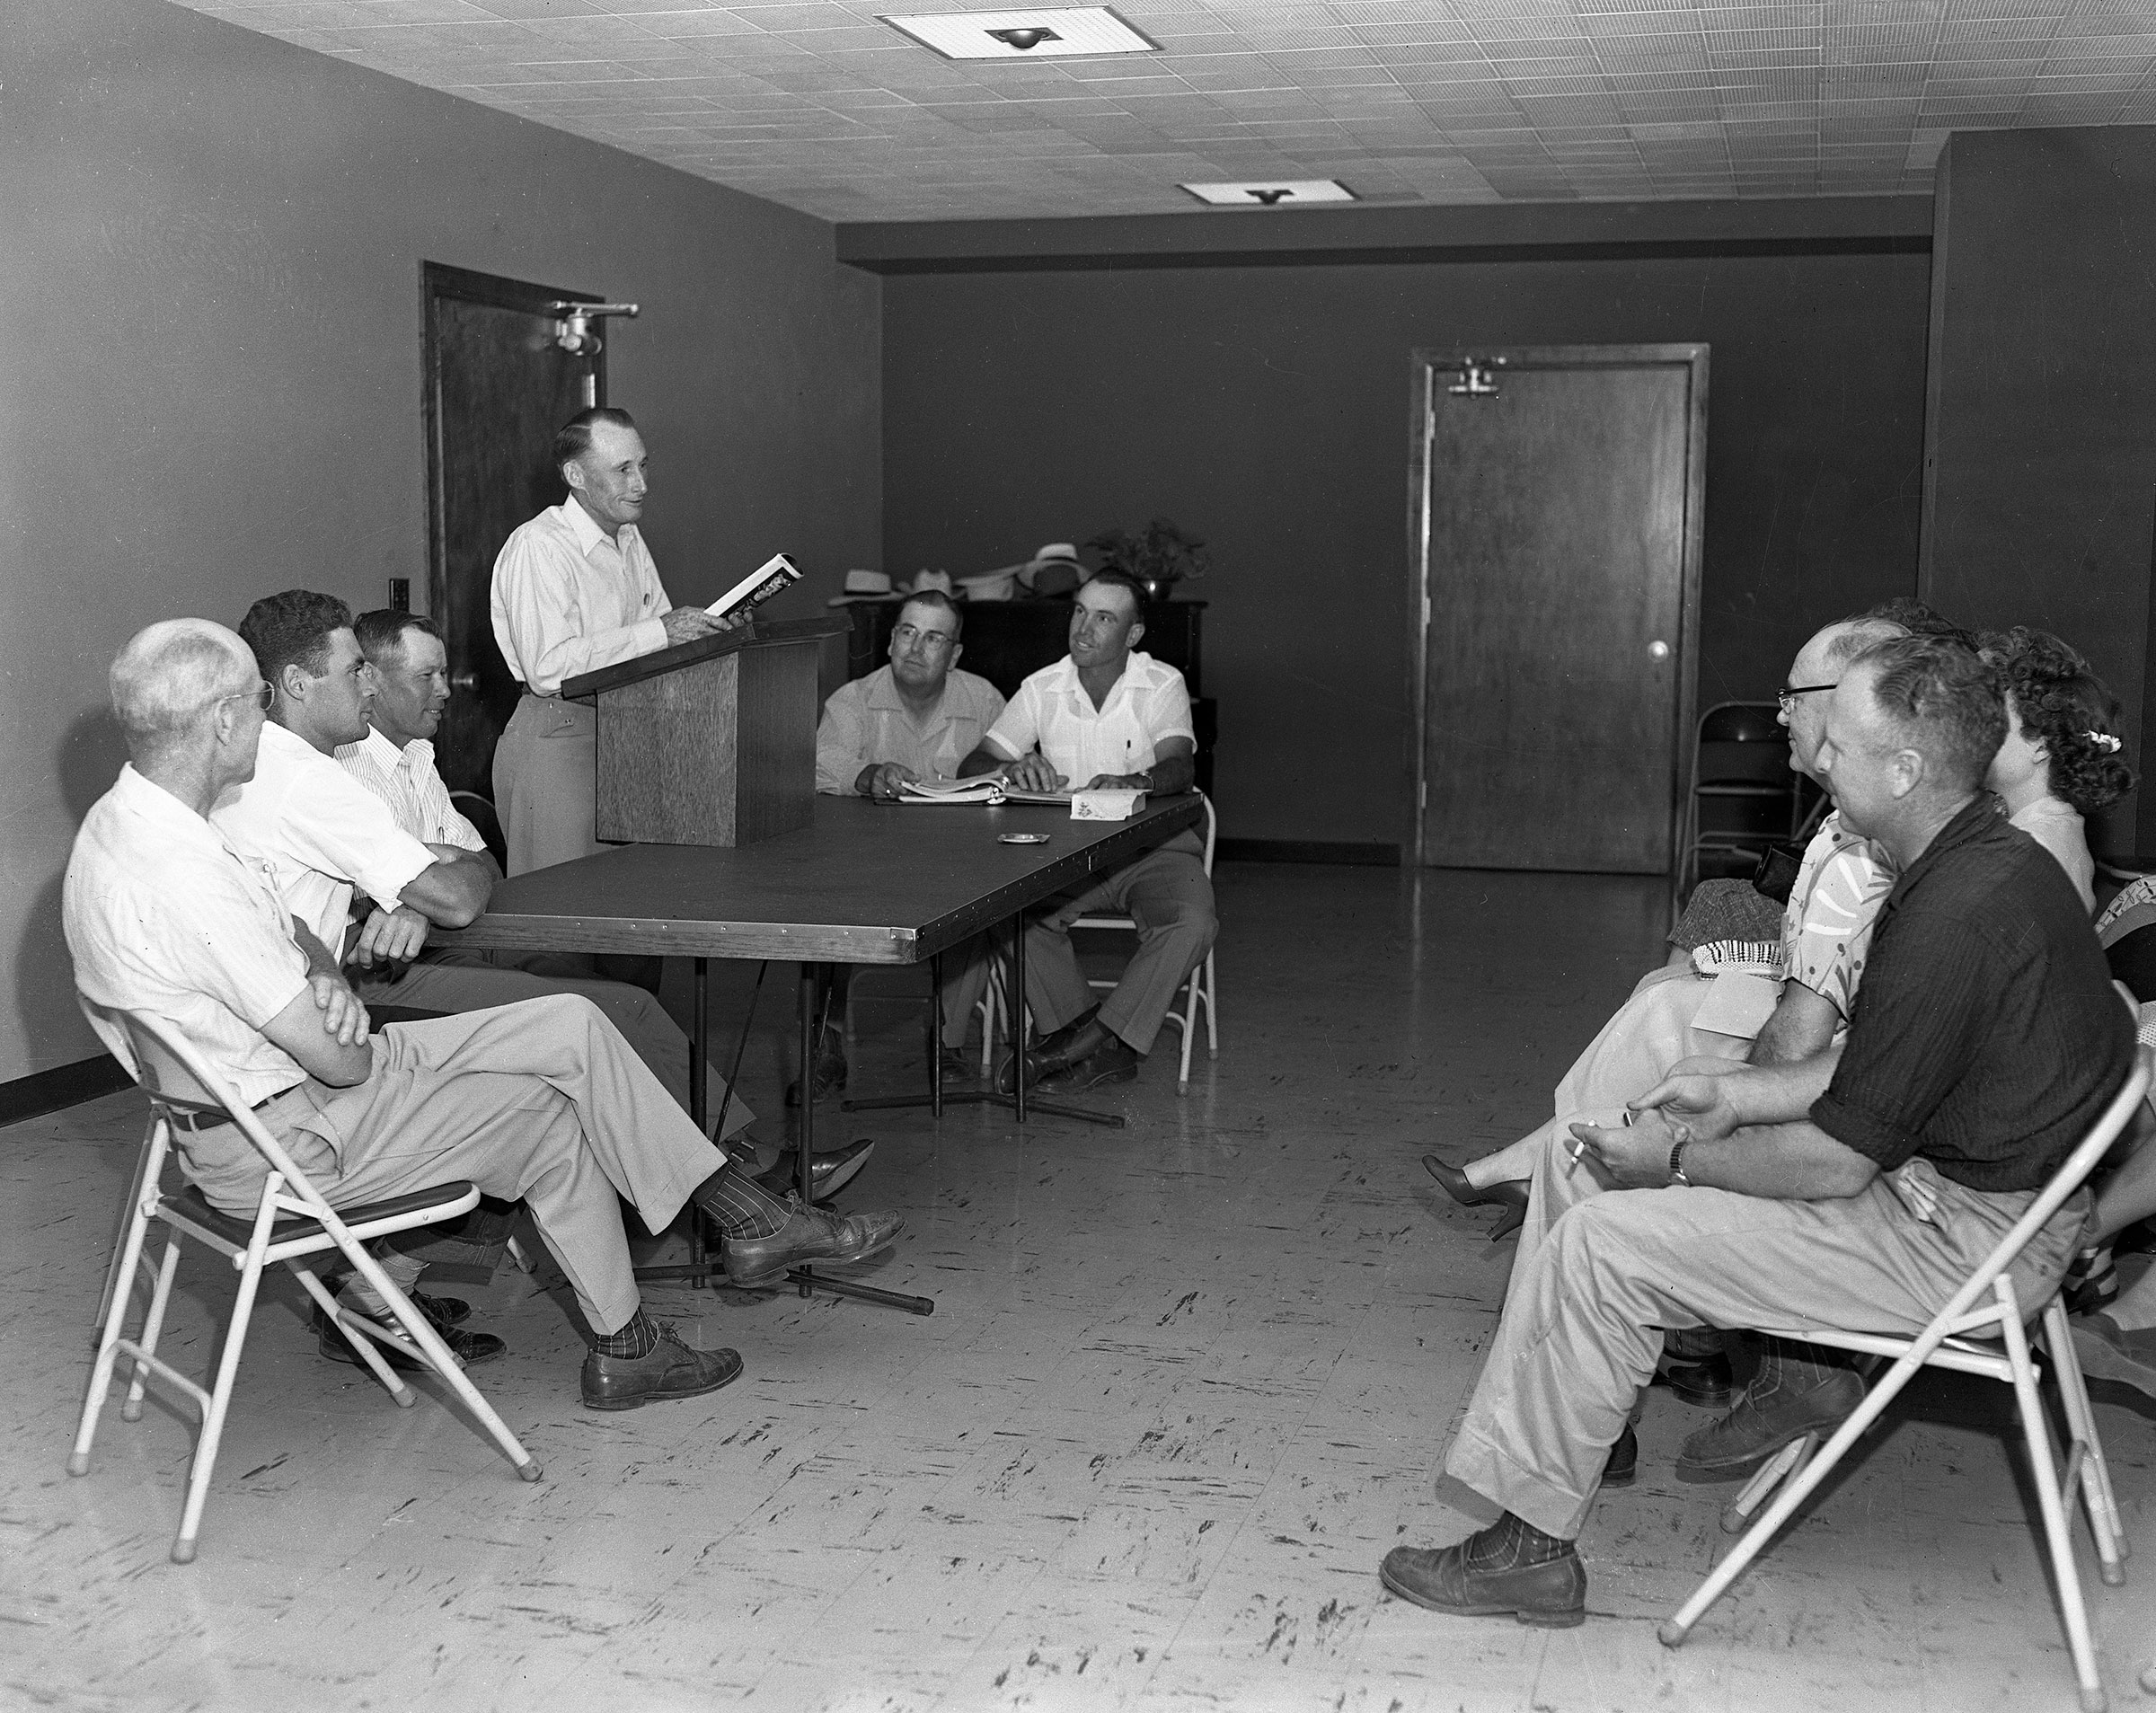 Members were faced with a highly divisive issue in the early days of Oklahoma Farm Bureau: commodity price supports. Several counties, such as Comanche County pictured here, held a series of debates on the issue to encourage members to research and present their opinions on the matter. This photo, taken in 1953, includes (left to right) Homer Turner, Charles Hasenbeck, Paul Scheetz, Charlie Bard, Stanley Caha and Elbrege Sullivan.